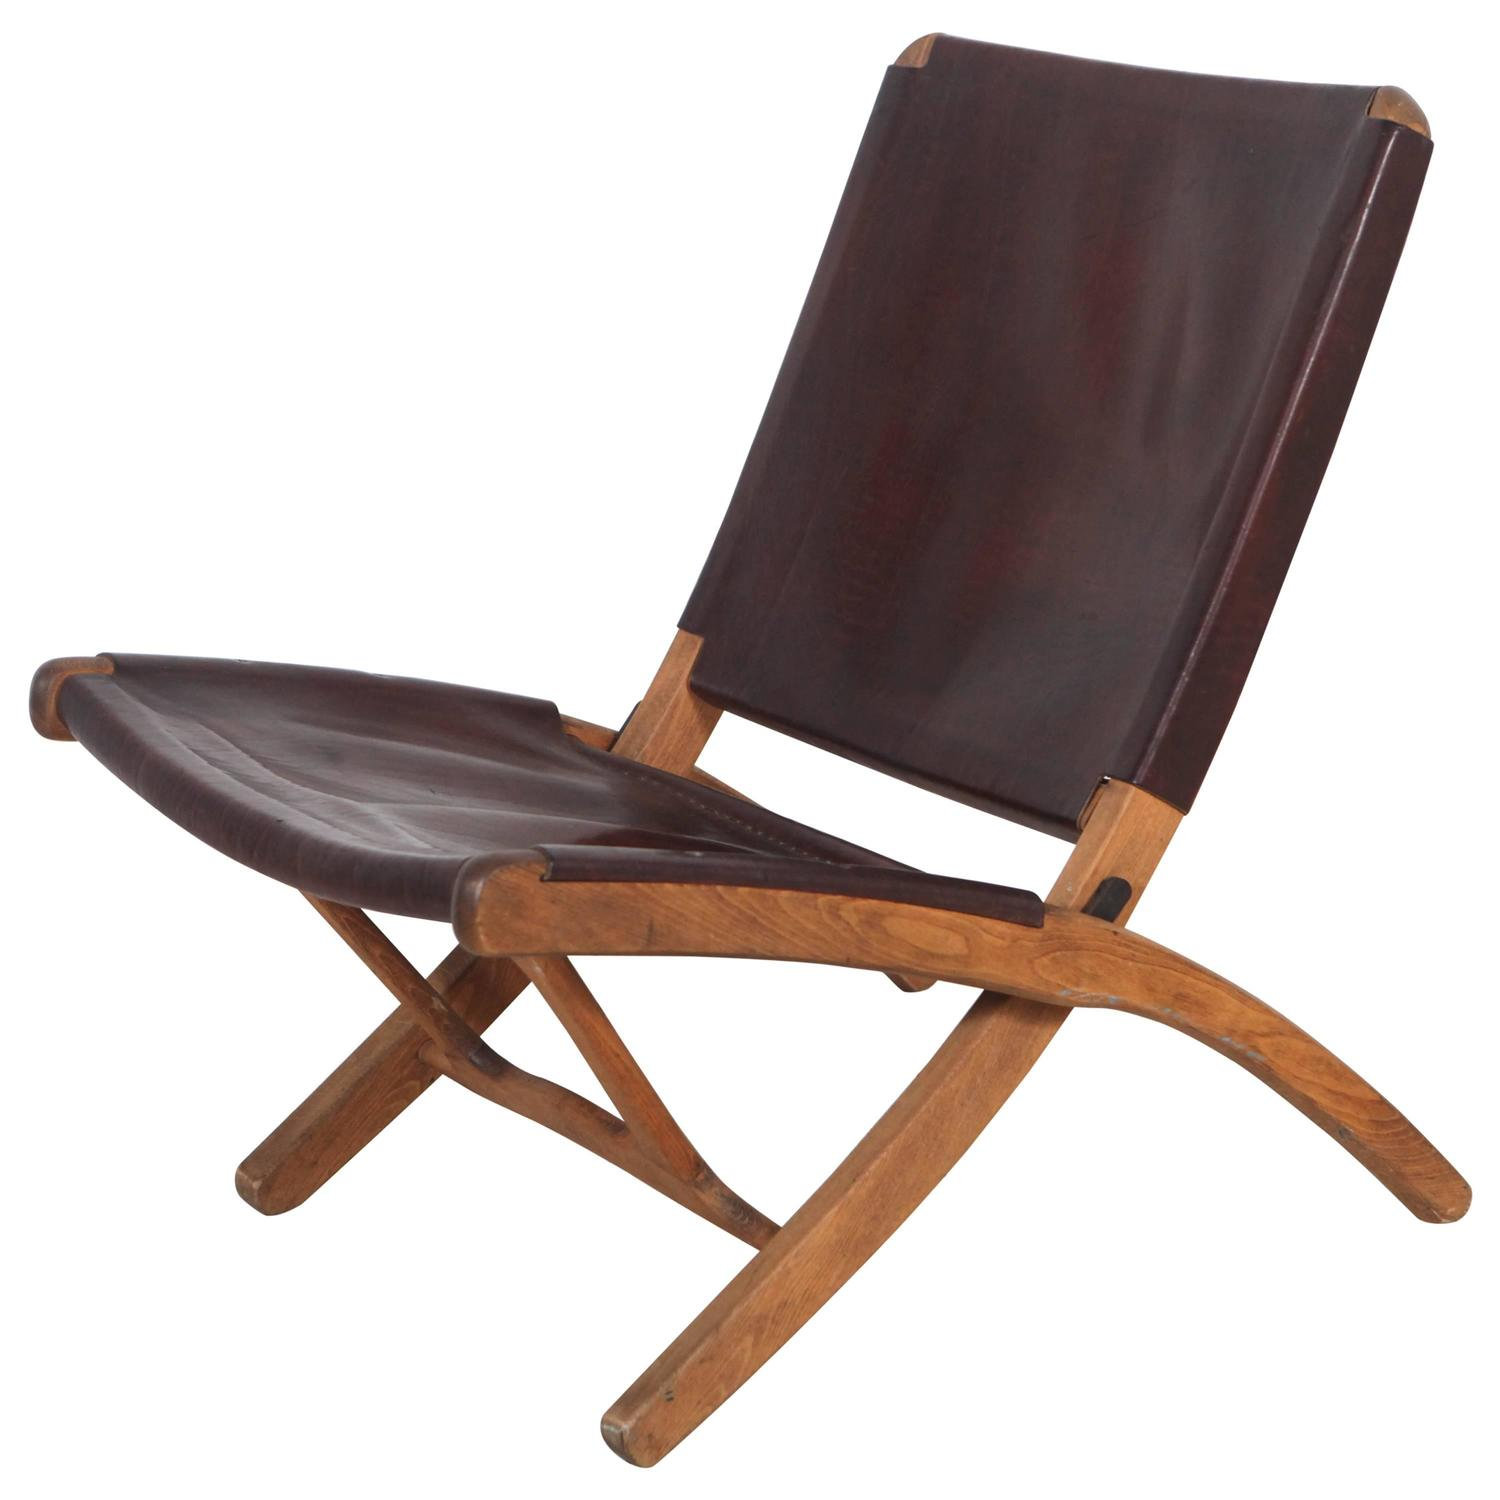 Wood Folding Chairs ~ Italian leather and wood folding chair at stdibs